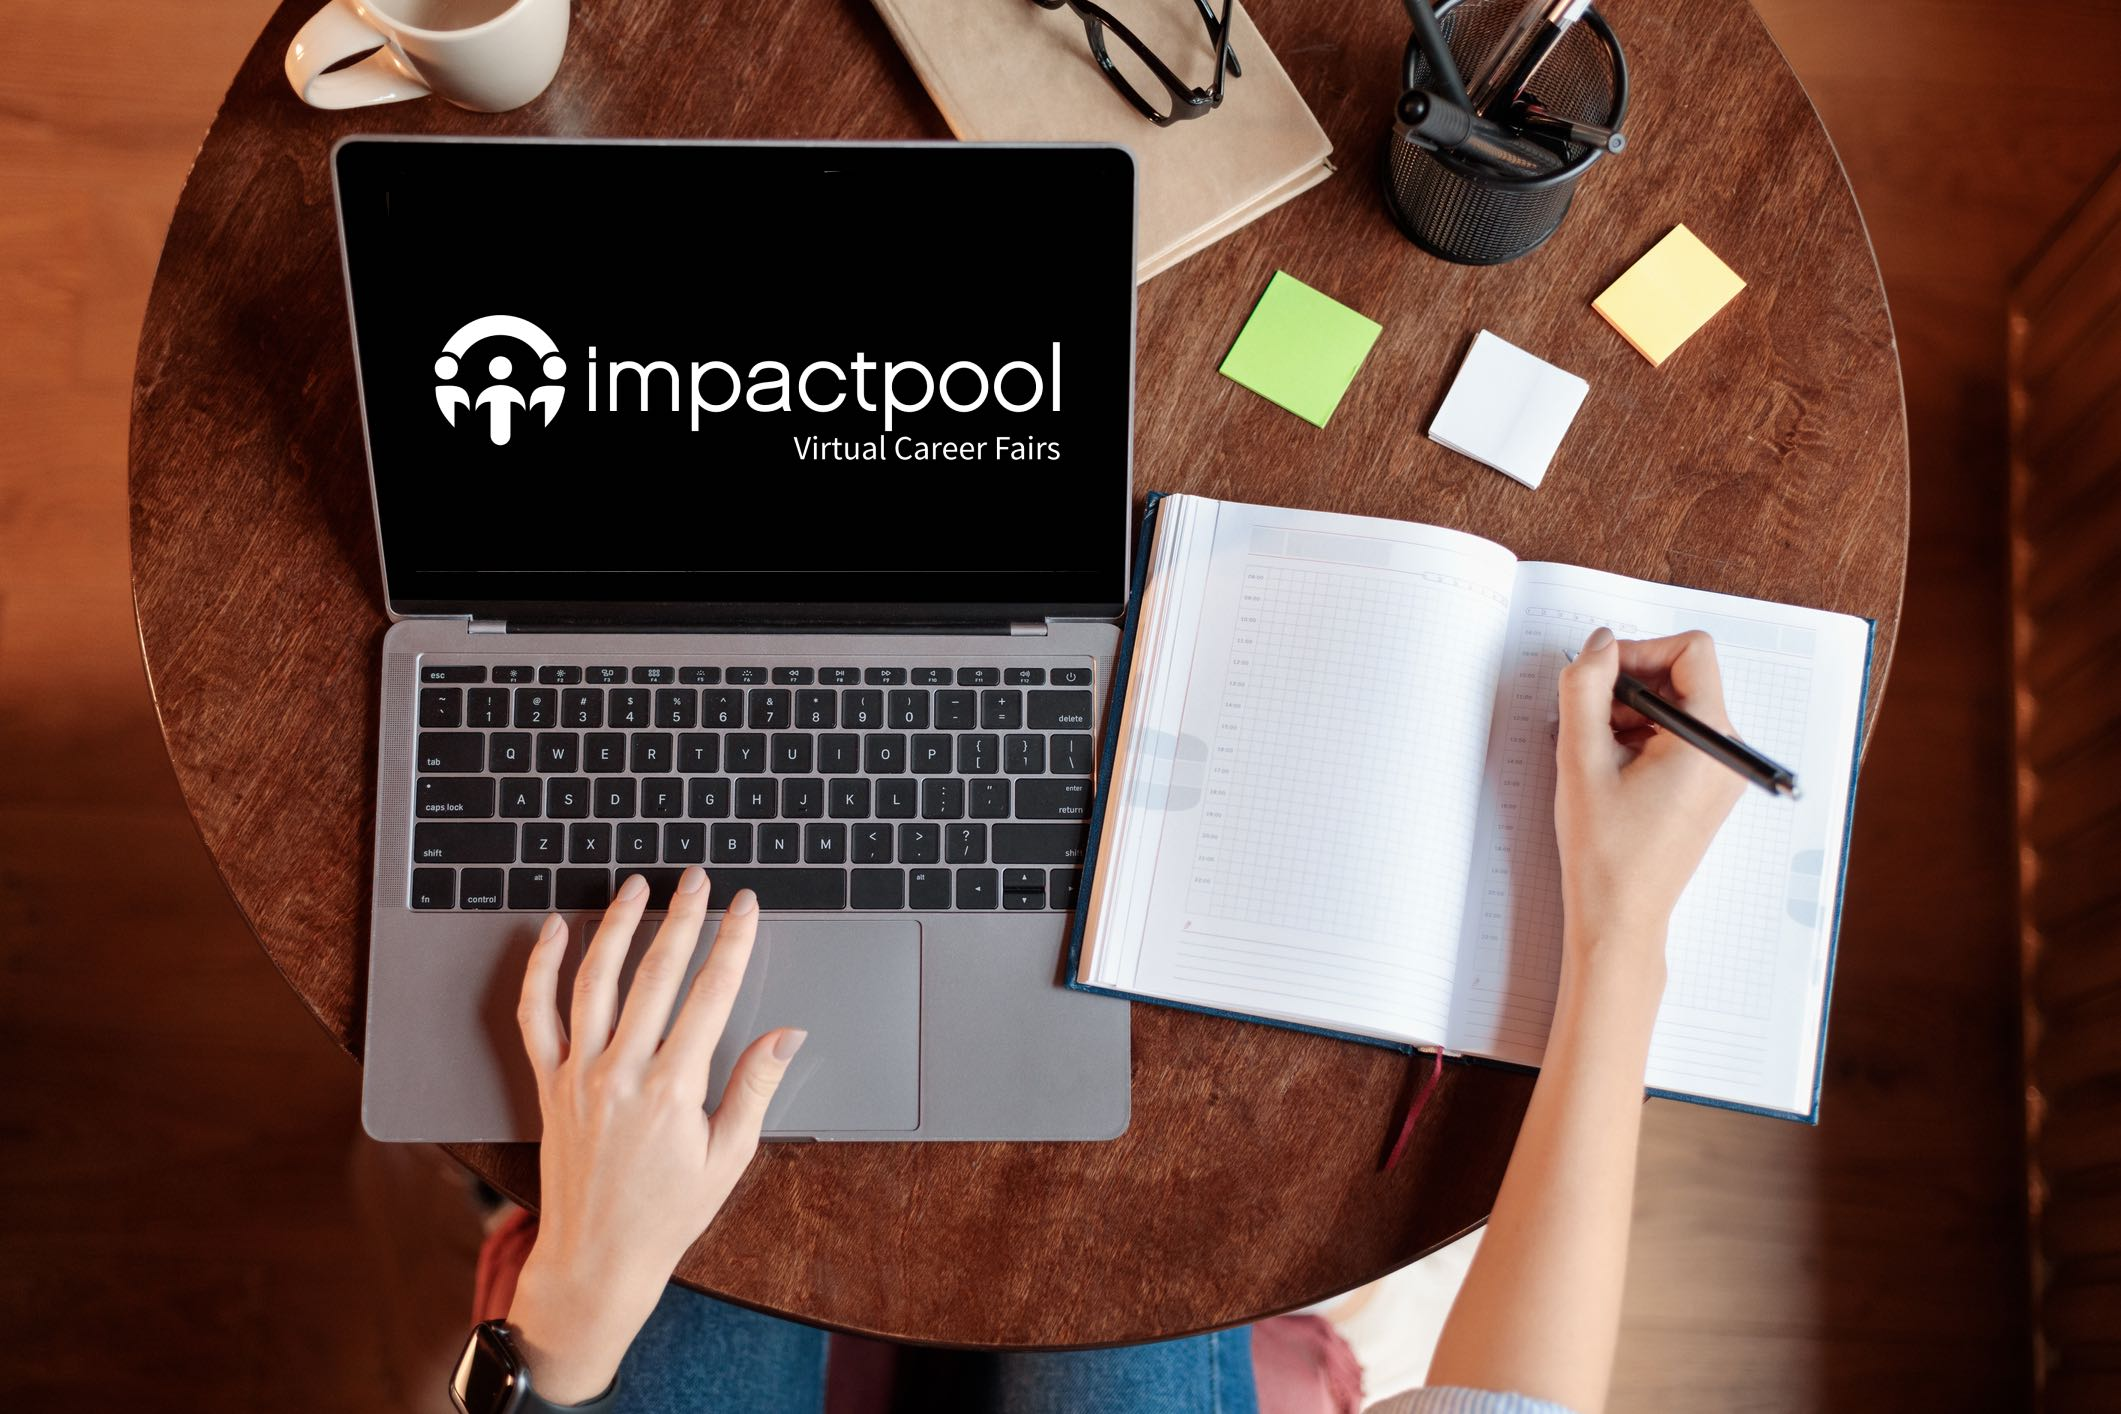 Impactpool launches its dedicated virtual career fair portal 510fa716 e682 44de accf 8bb7cba91912